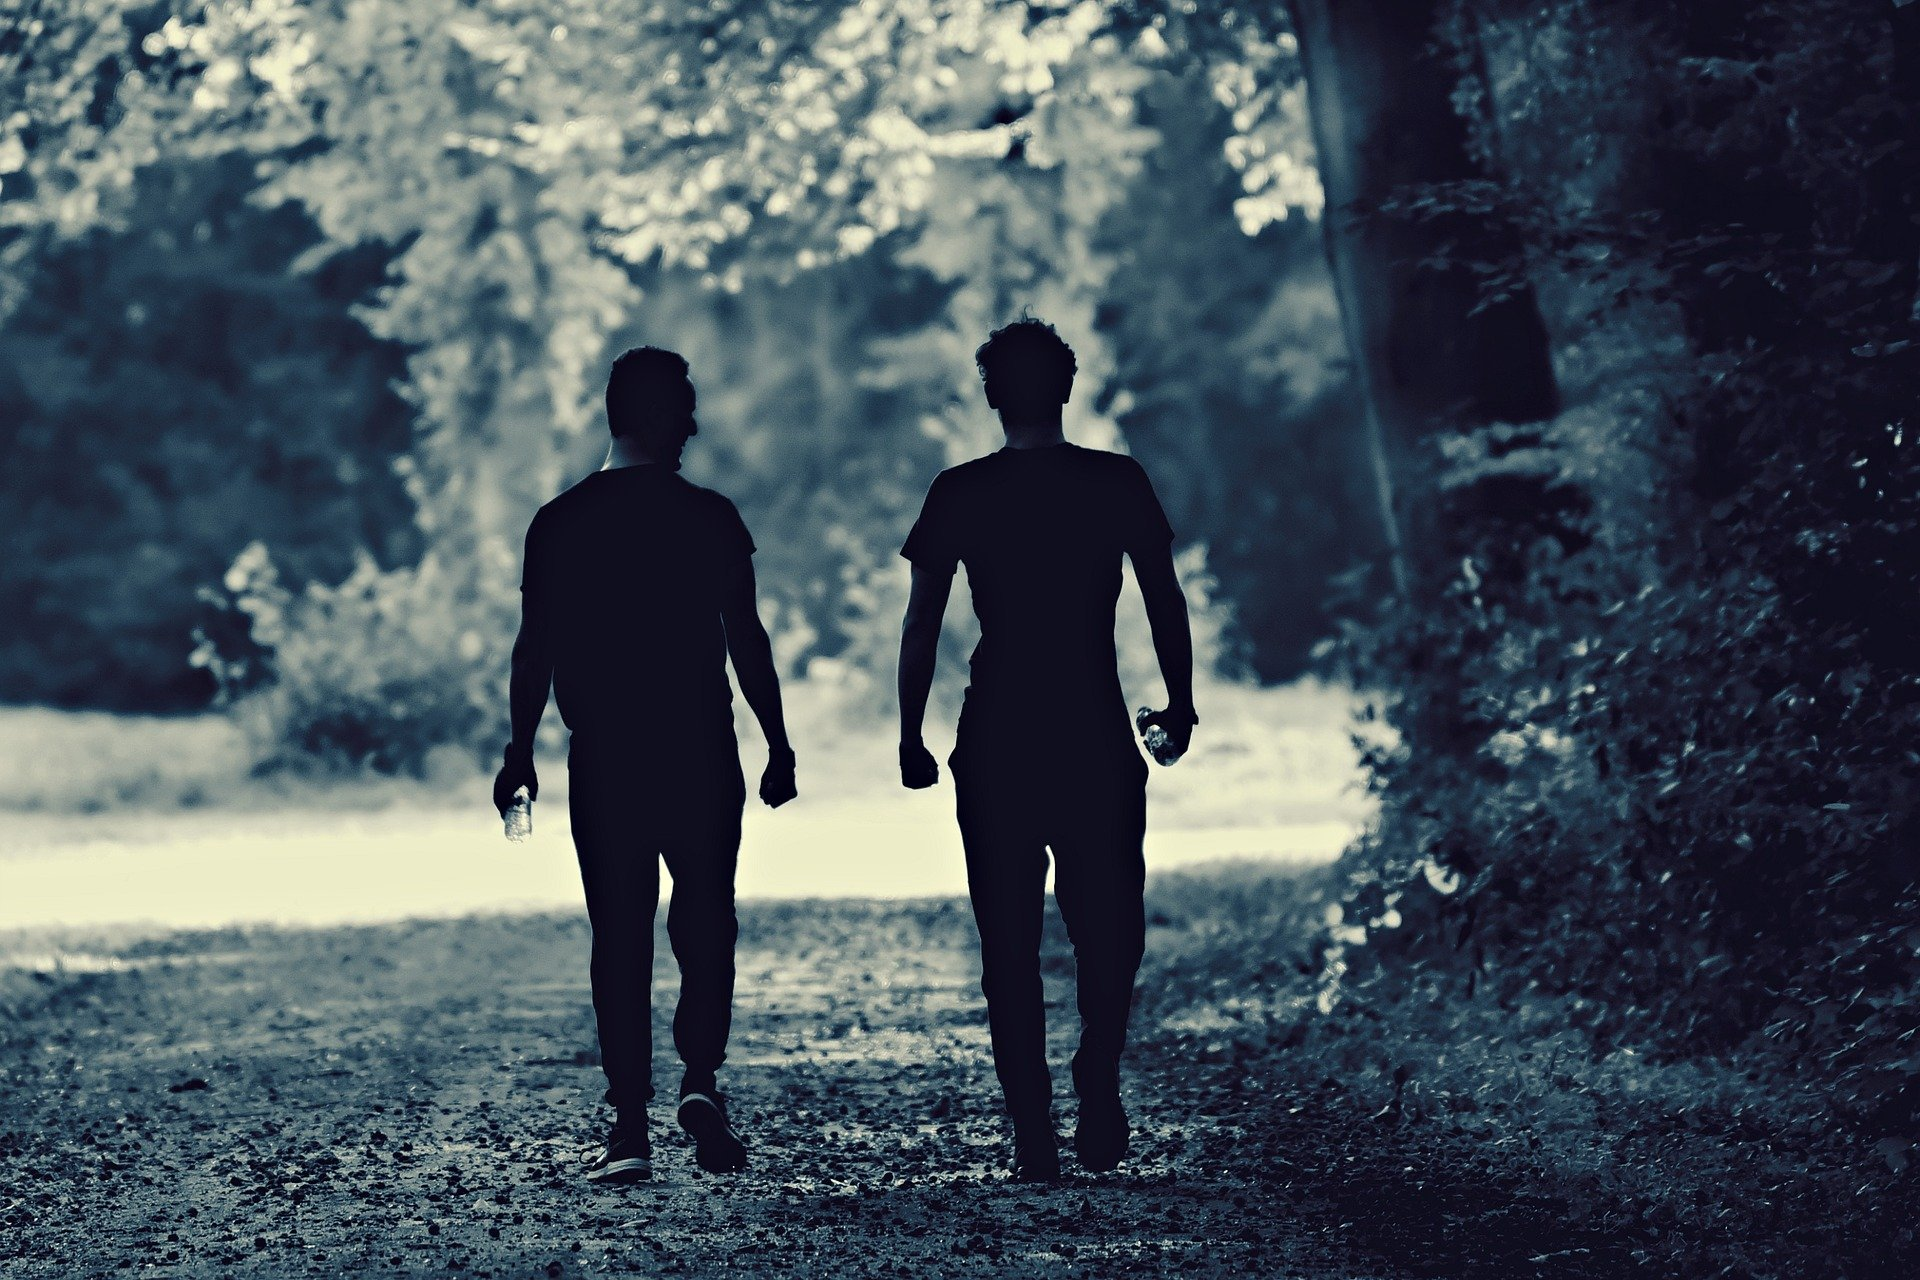 Two men walking on a nature trail. | Source: Pixabay.